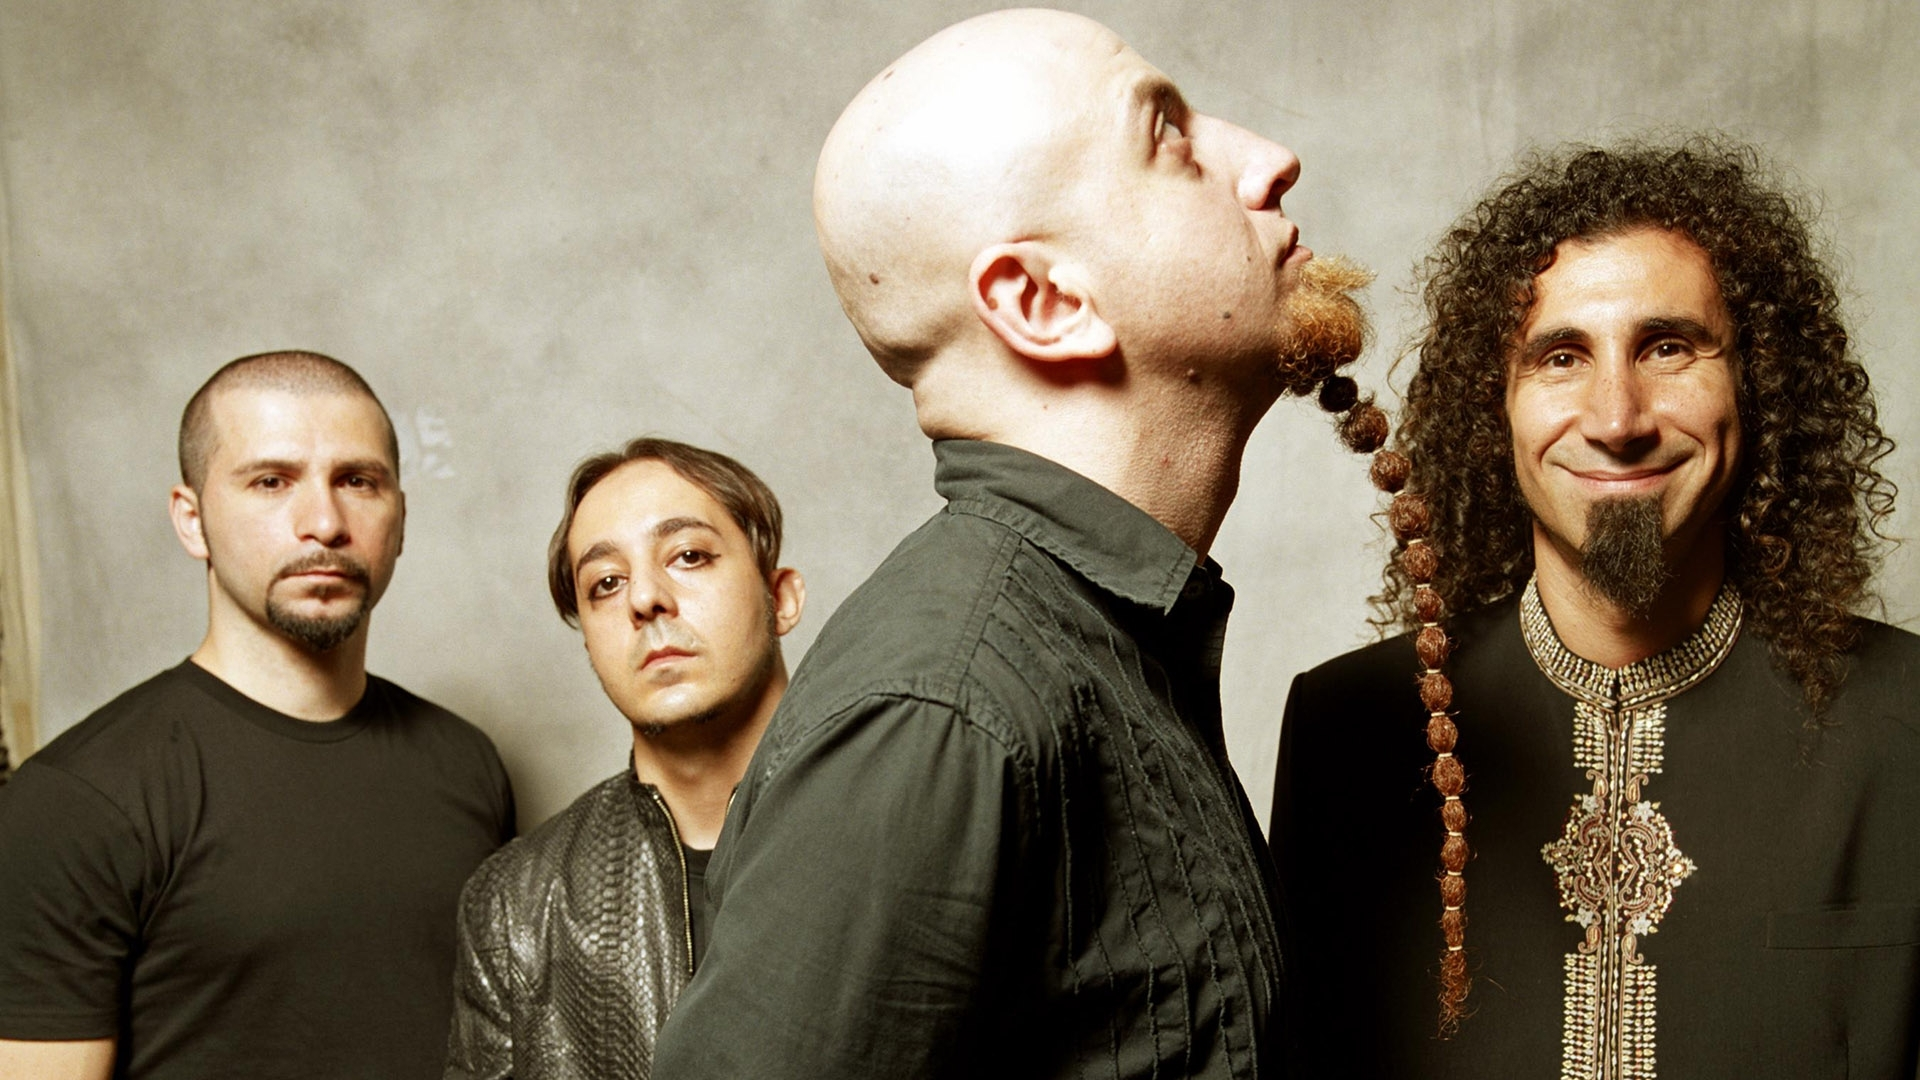 System of A Down Drummer Casts Doubt Over Hopes of an Upcoming Album